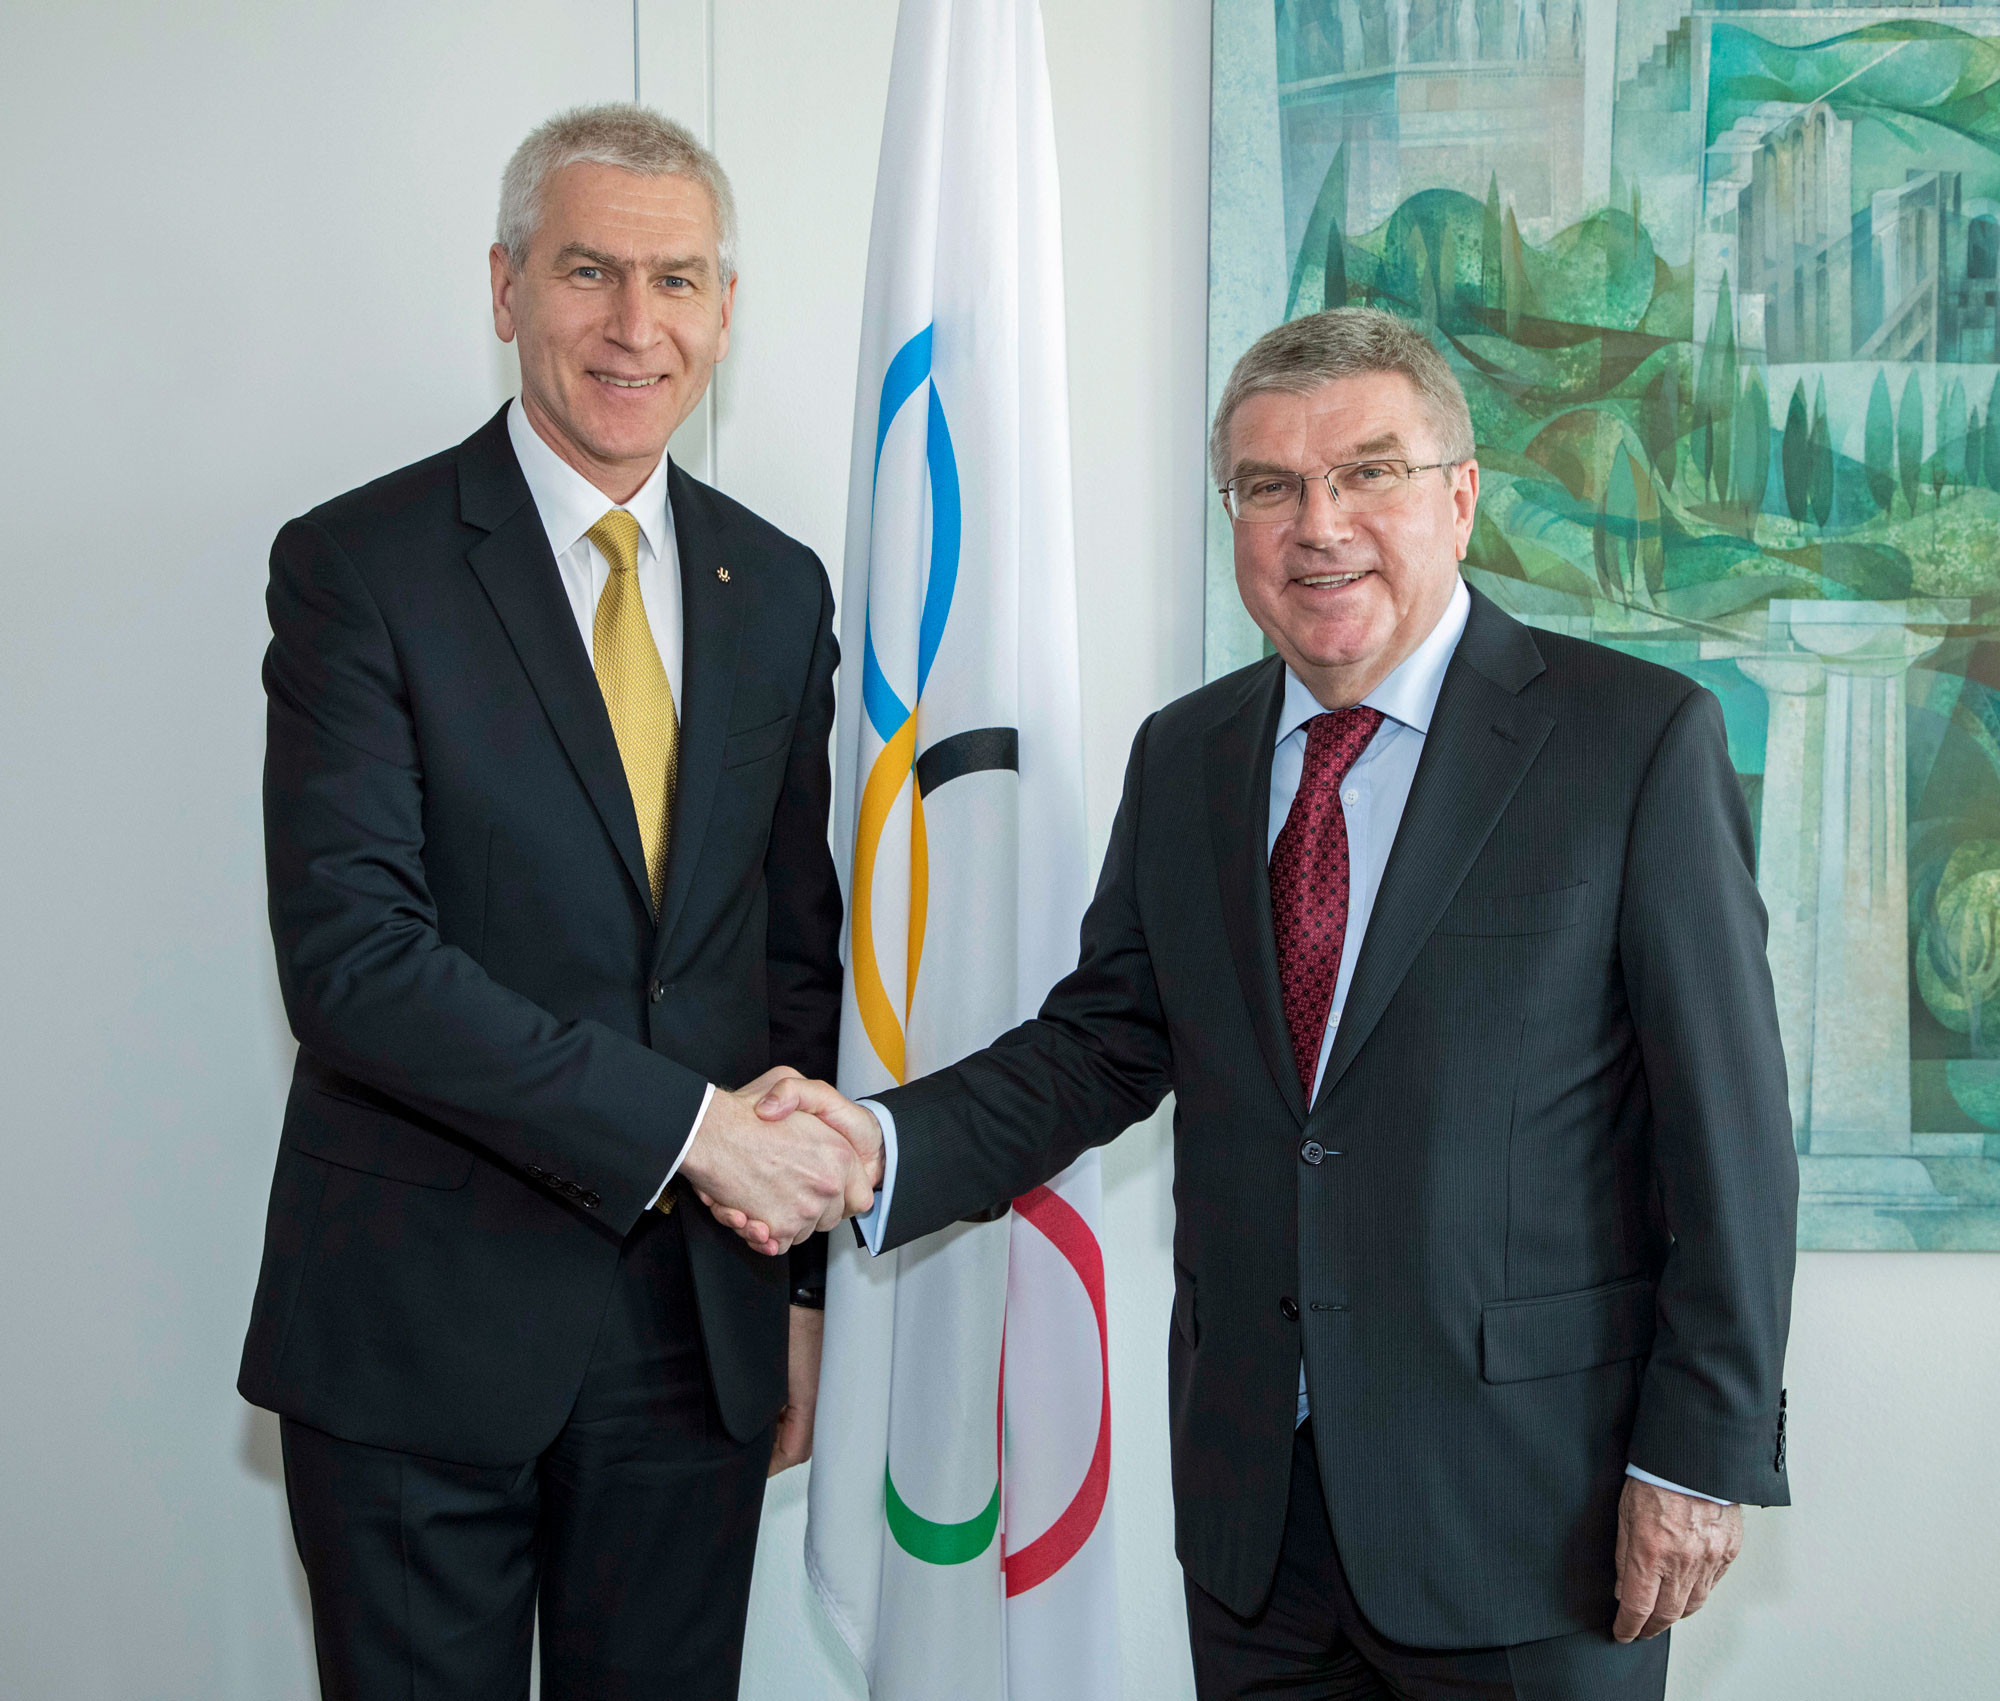 FISU President welcomes IOC Olympic Education Commission appointment